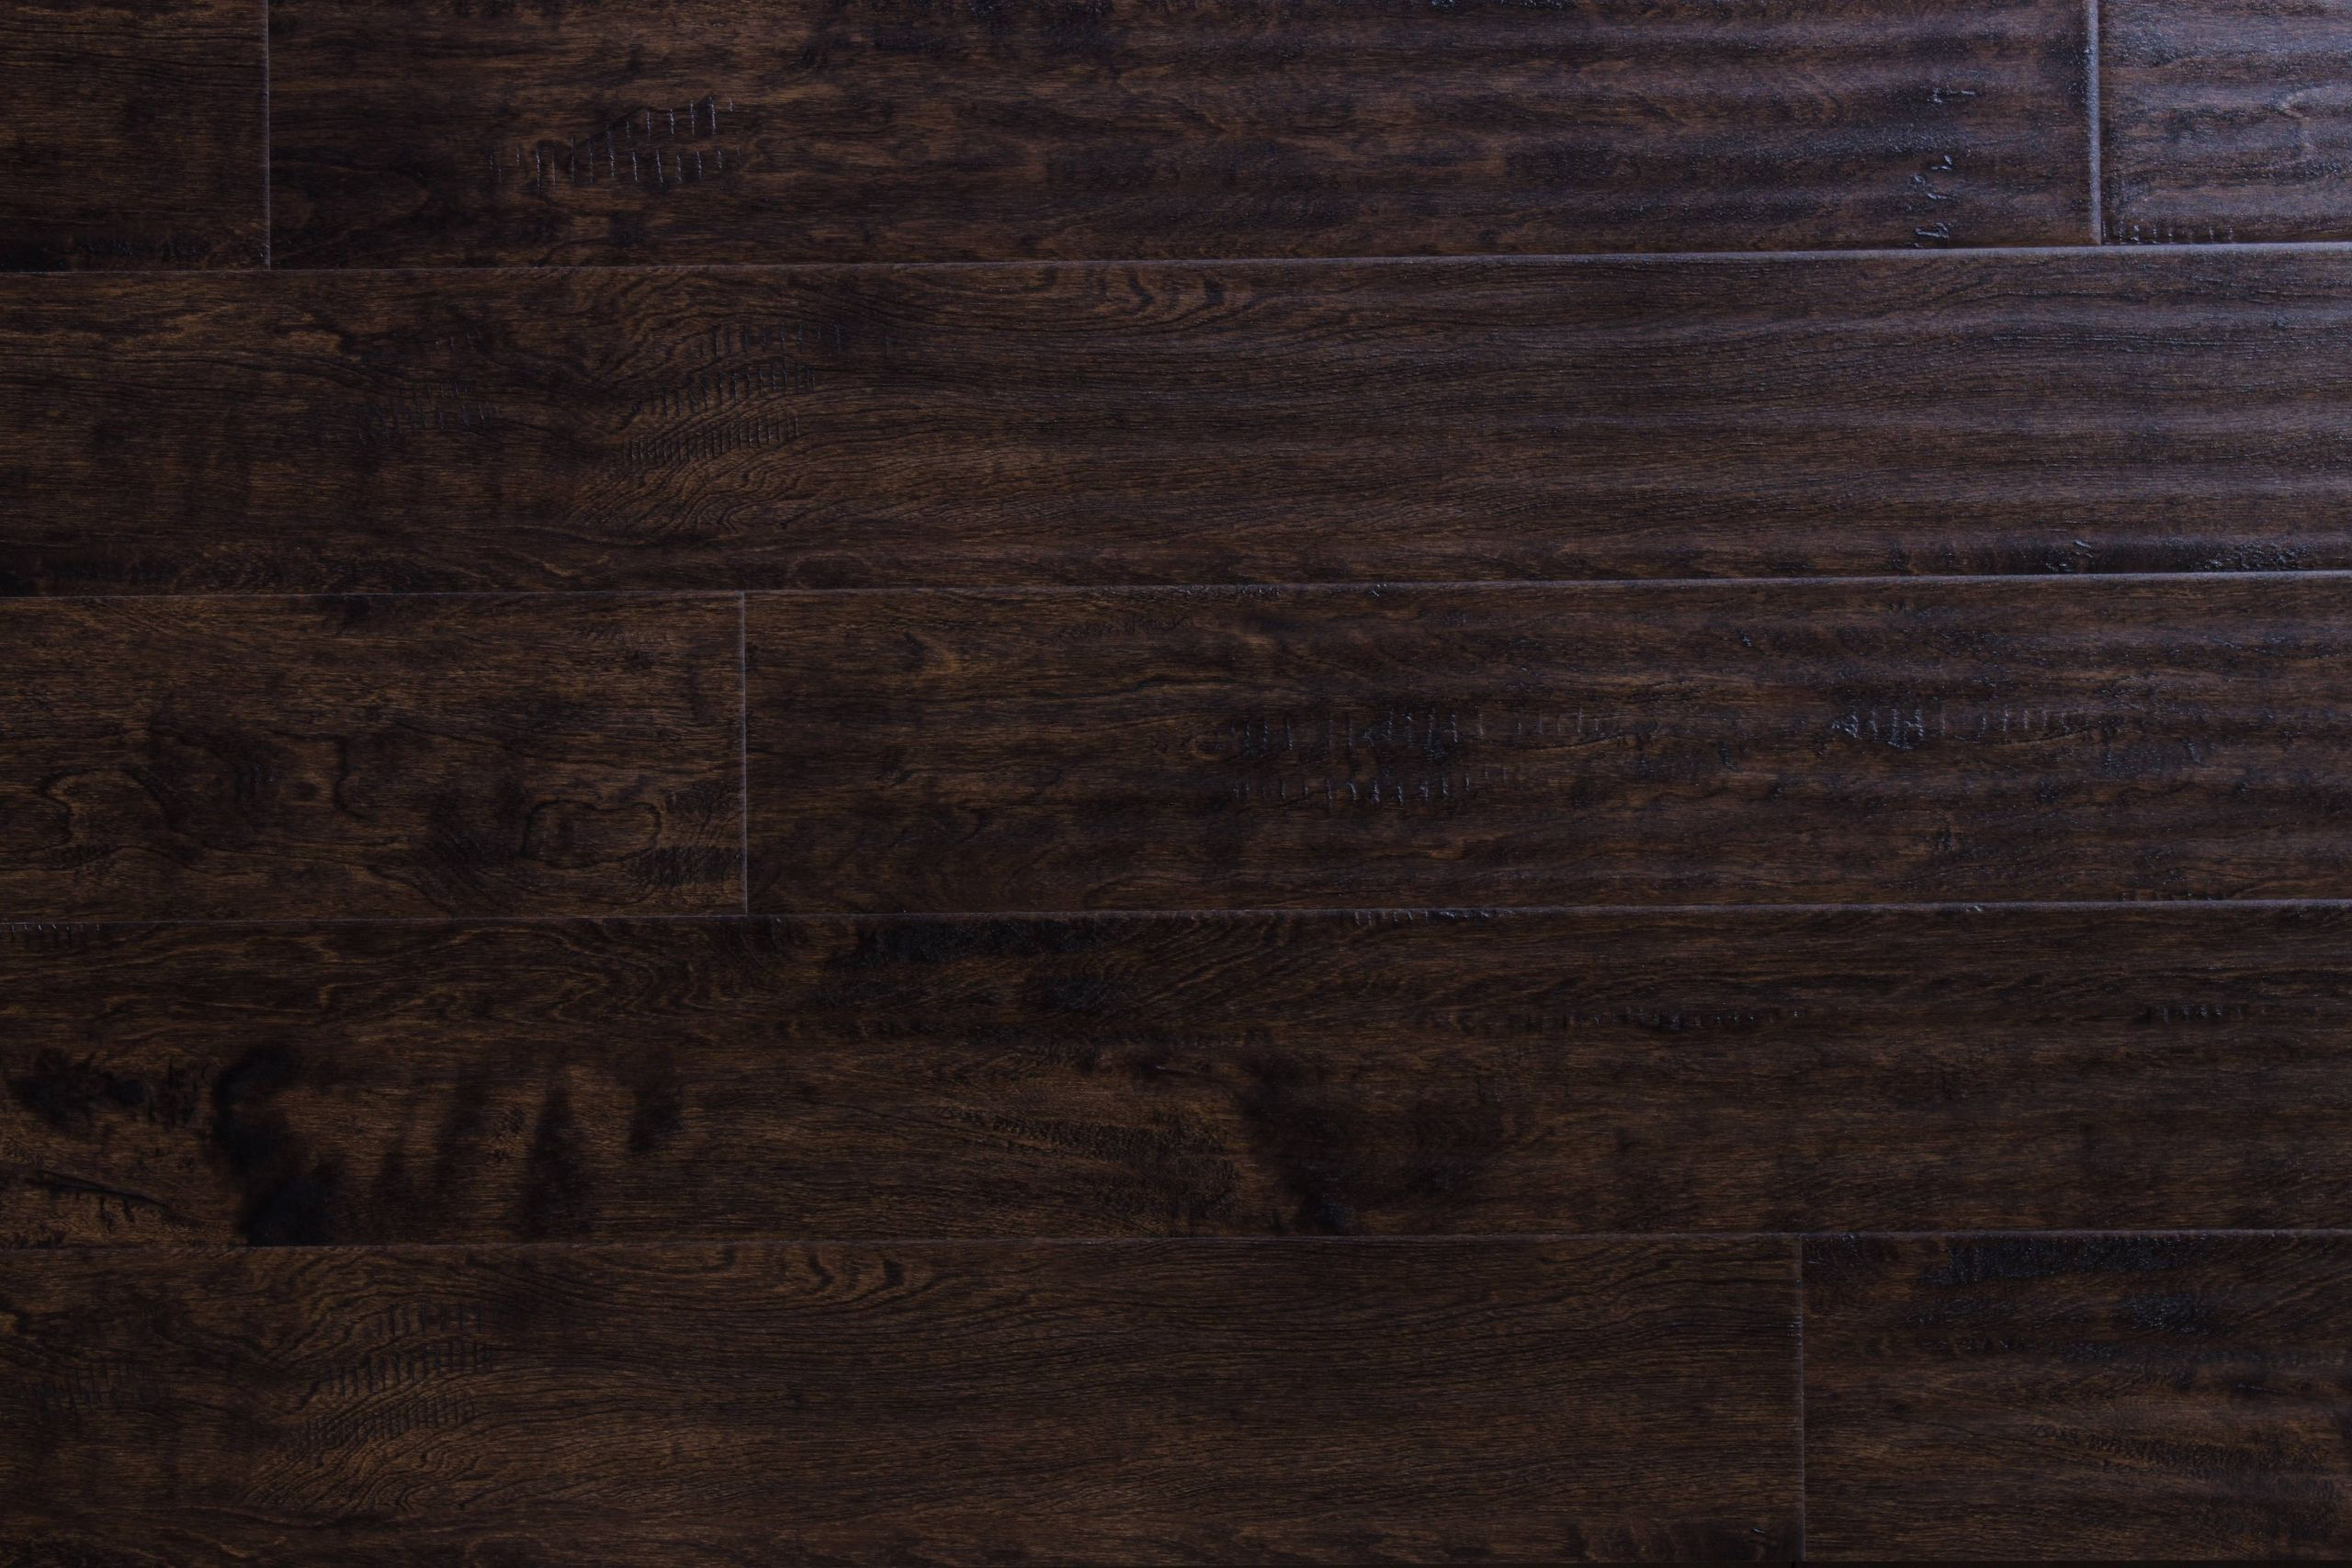 hardwood floor width trend of wood flooring free samples available at builddirecta with regard to tailor multi gb bb8d3c